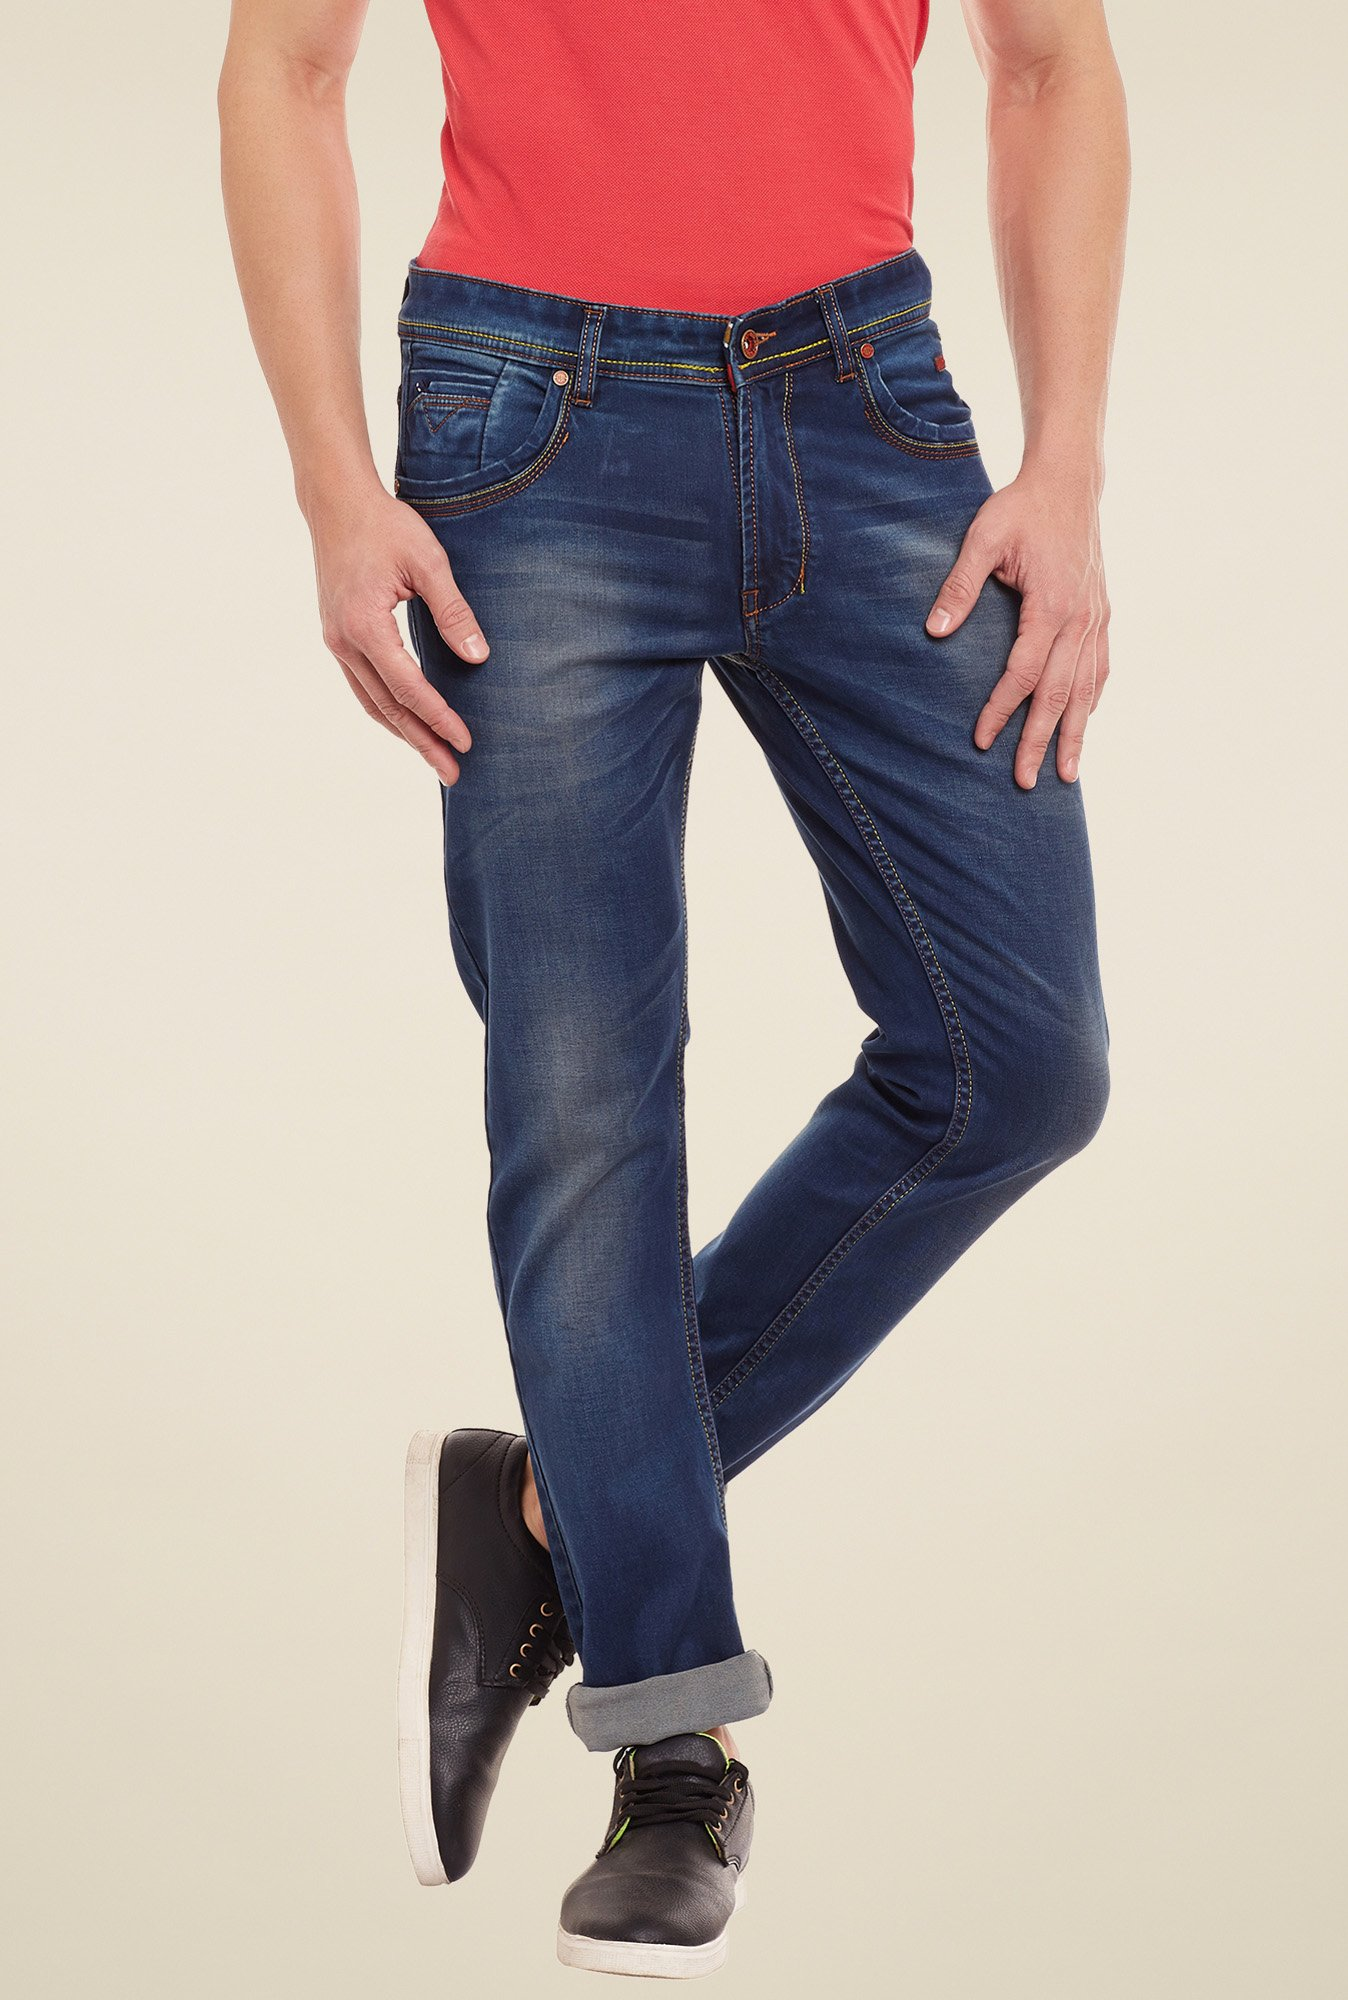 Duke Dark Blue Lightly Washed Mid Rise Jeans